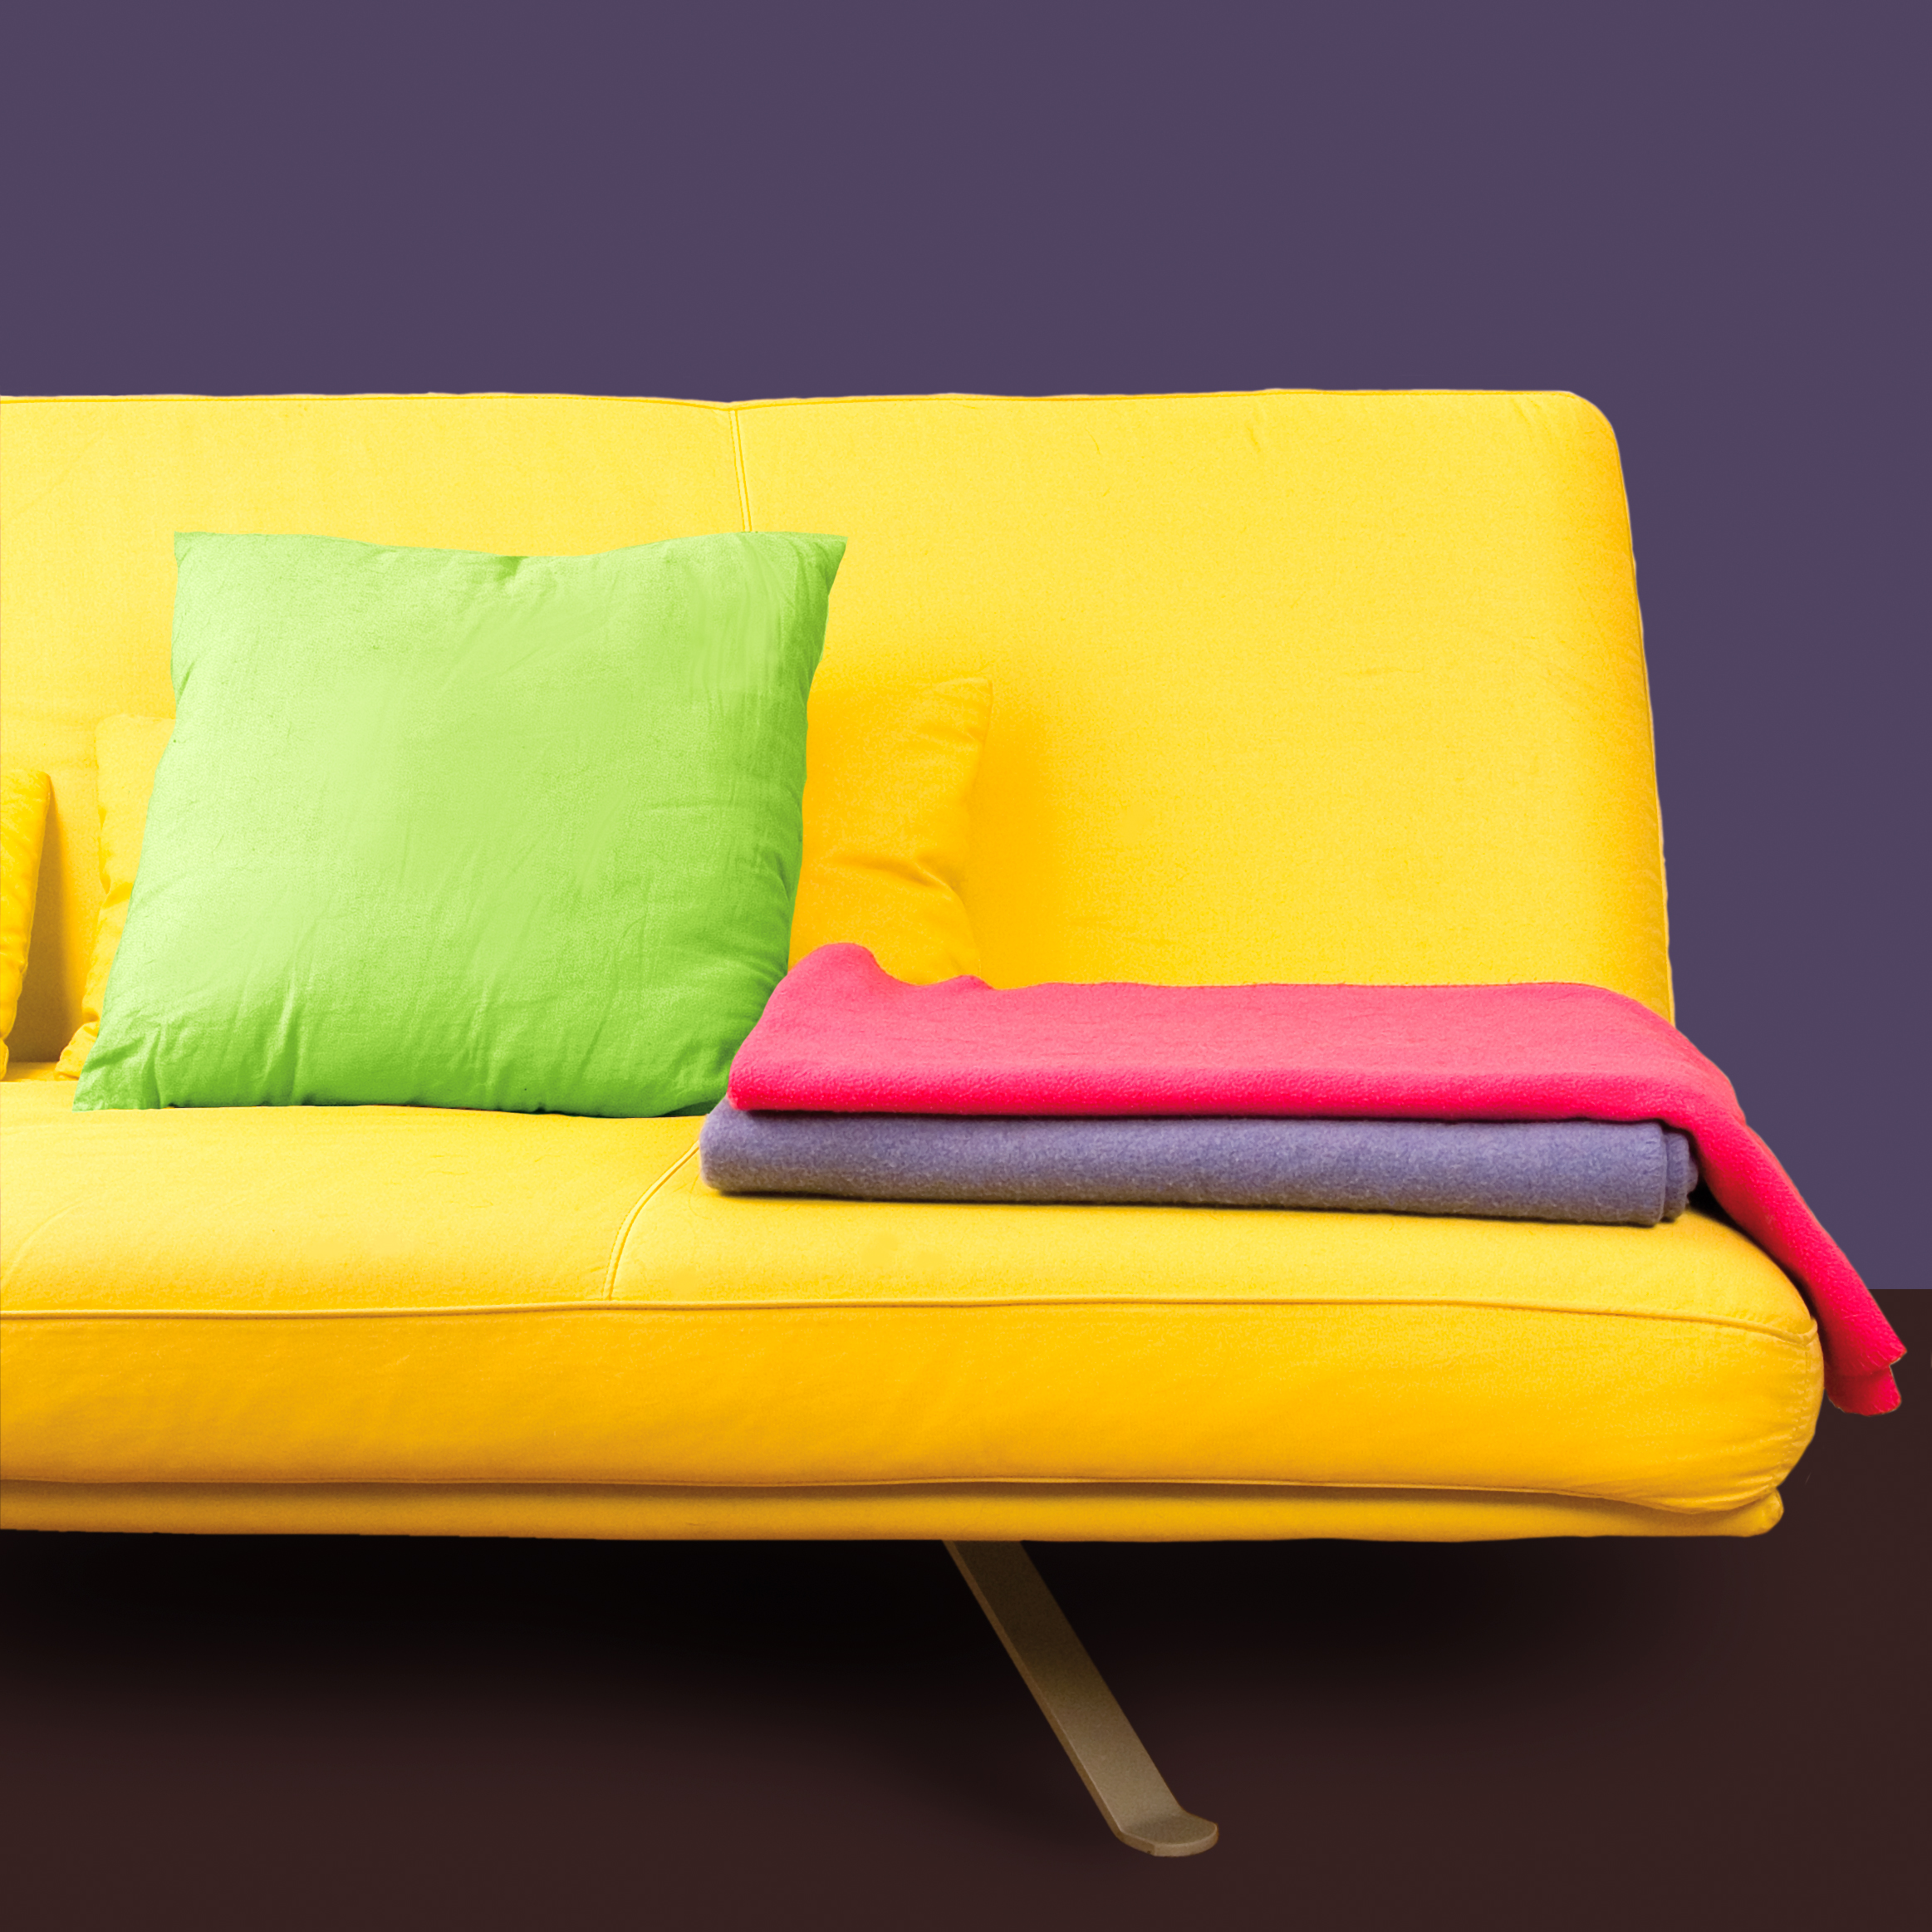 Rearranging The Living Room With Our Modern White Leather: Rearranging The Furniture: How To Rearrange Words To Give